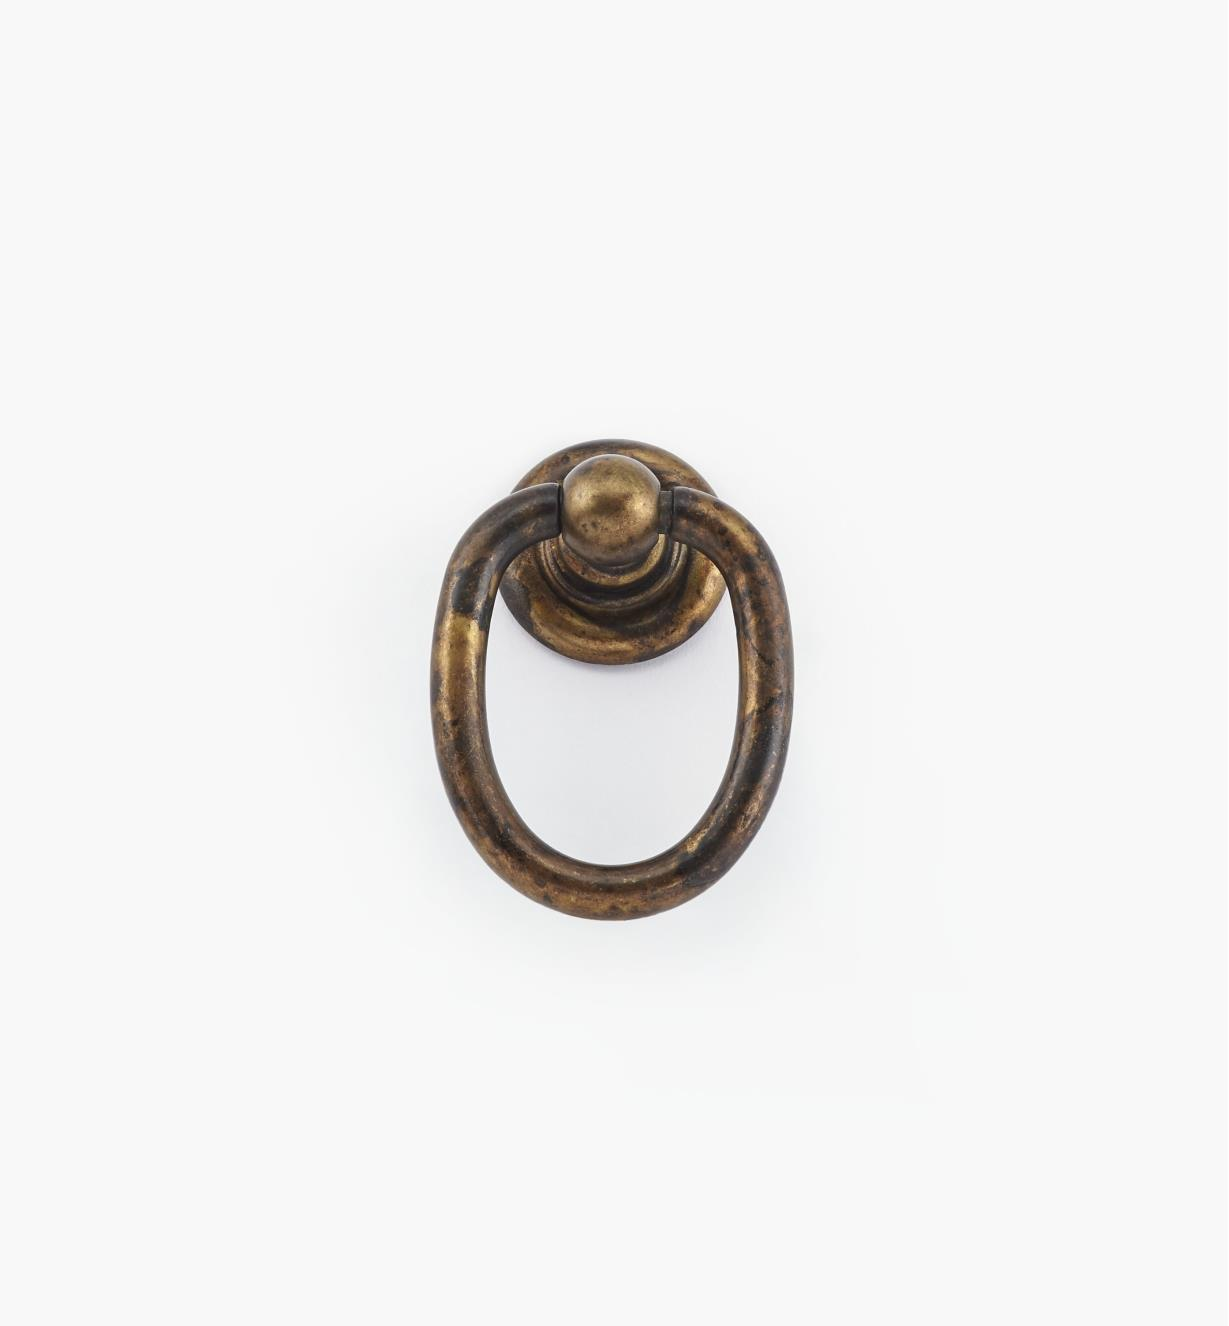 01X4063 - Old Brass Ring Pull